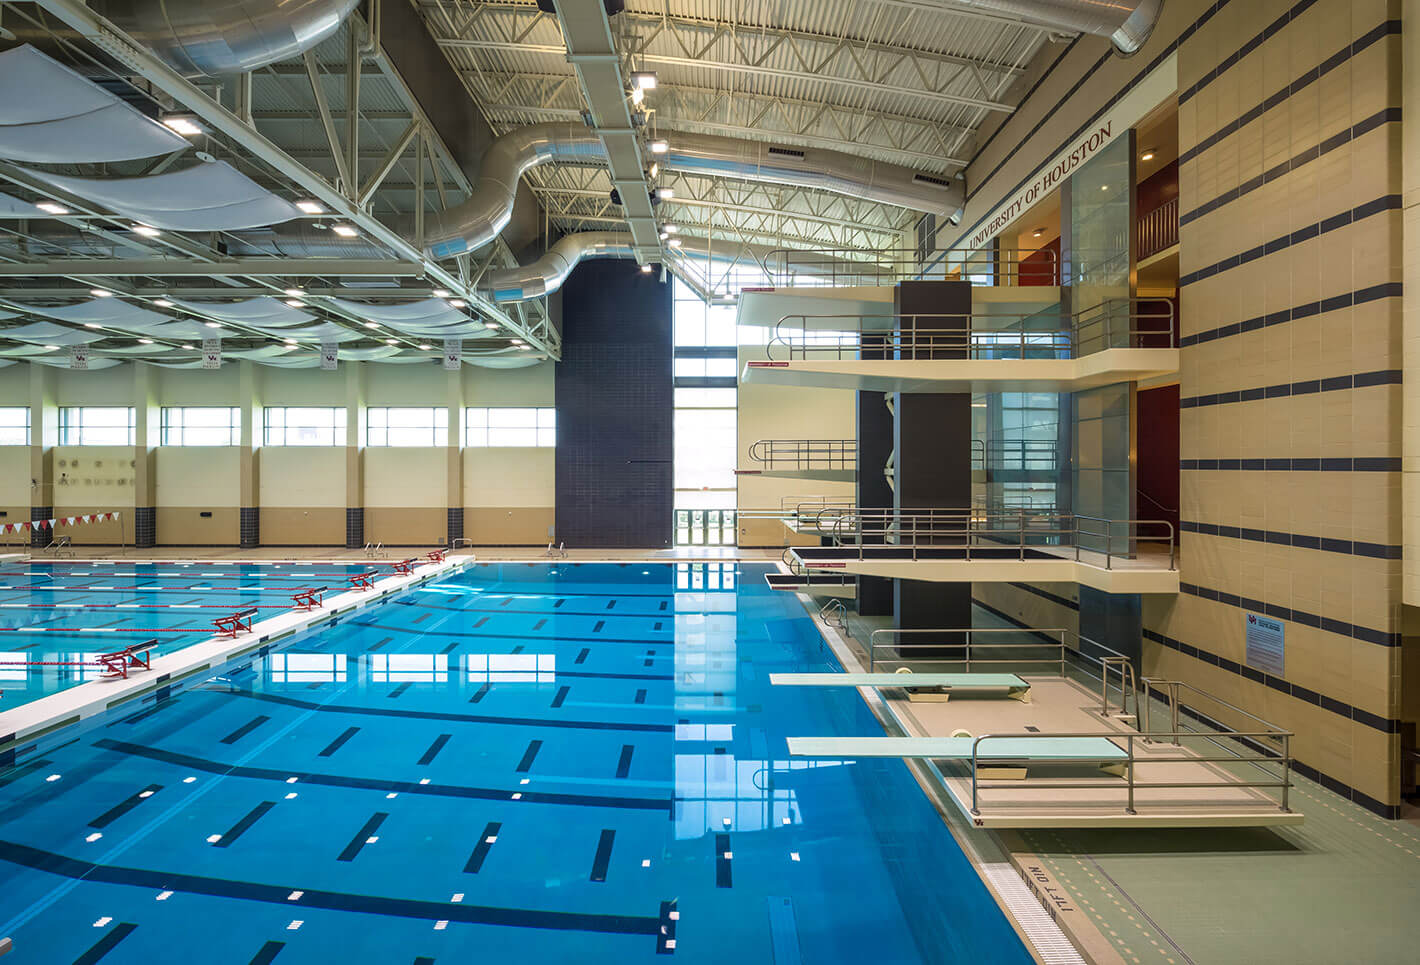 University of Houston Natatorium